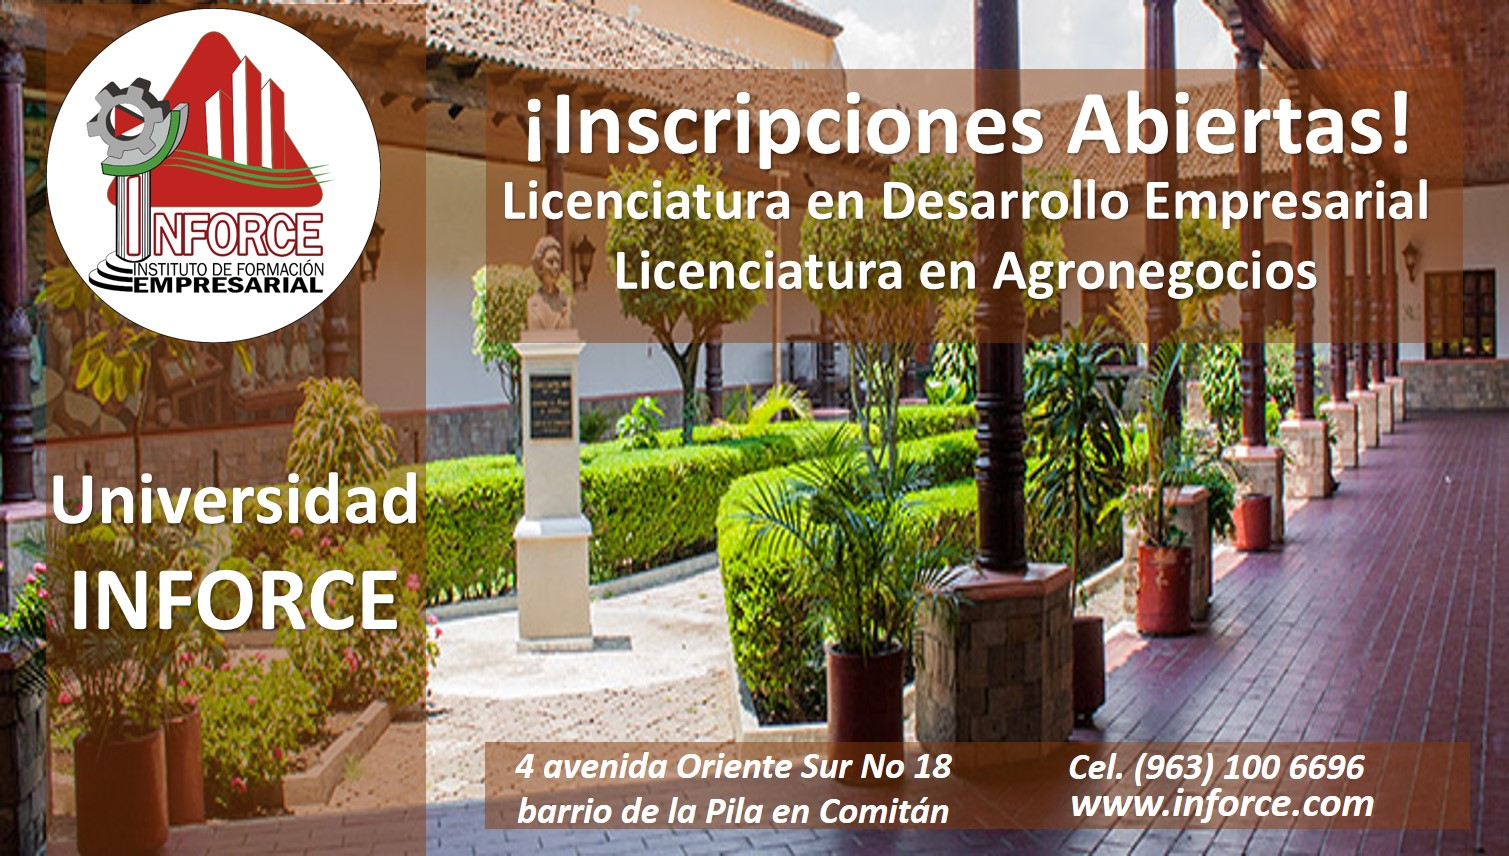 universidad-inforce-comitan-instituto-de-formacion-empresarial-7.jpg